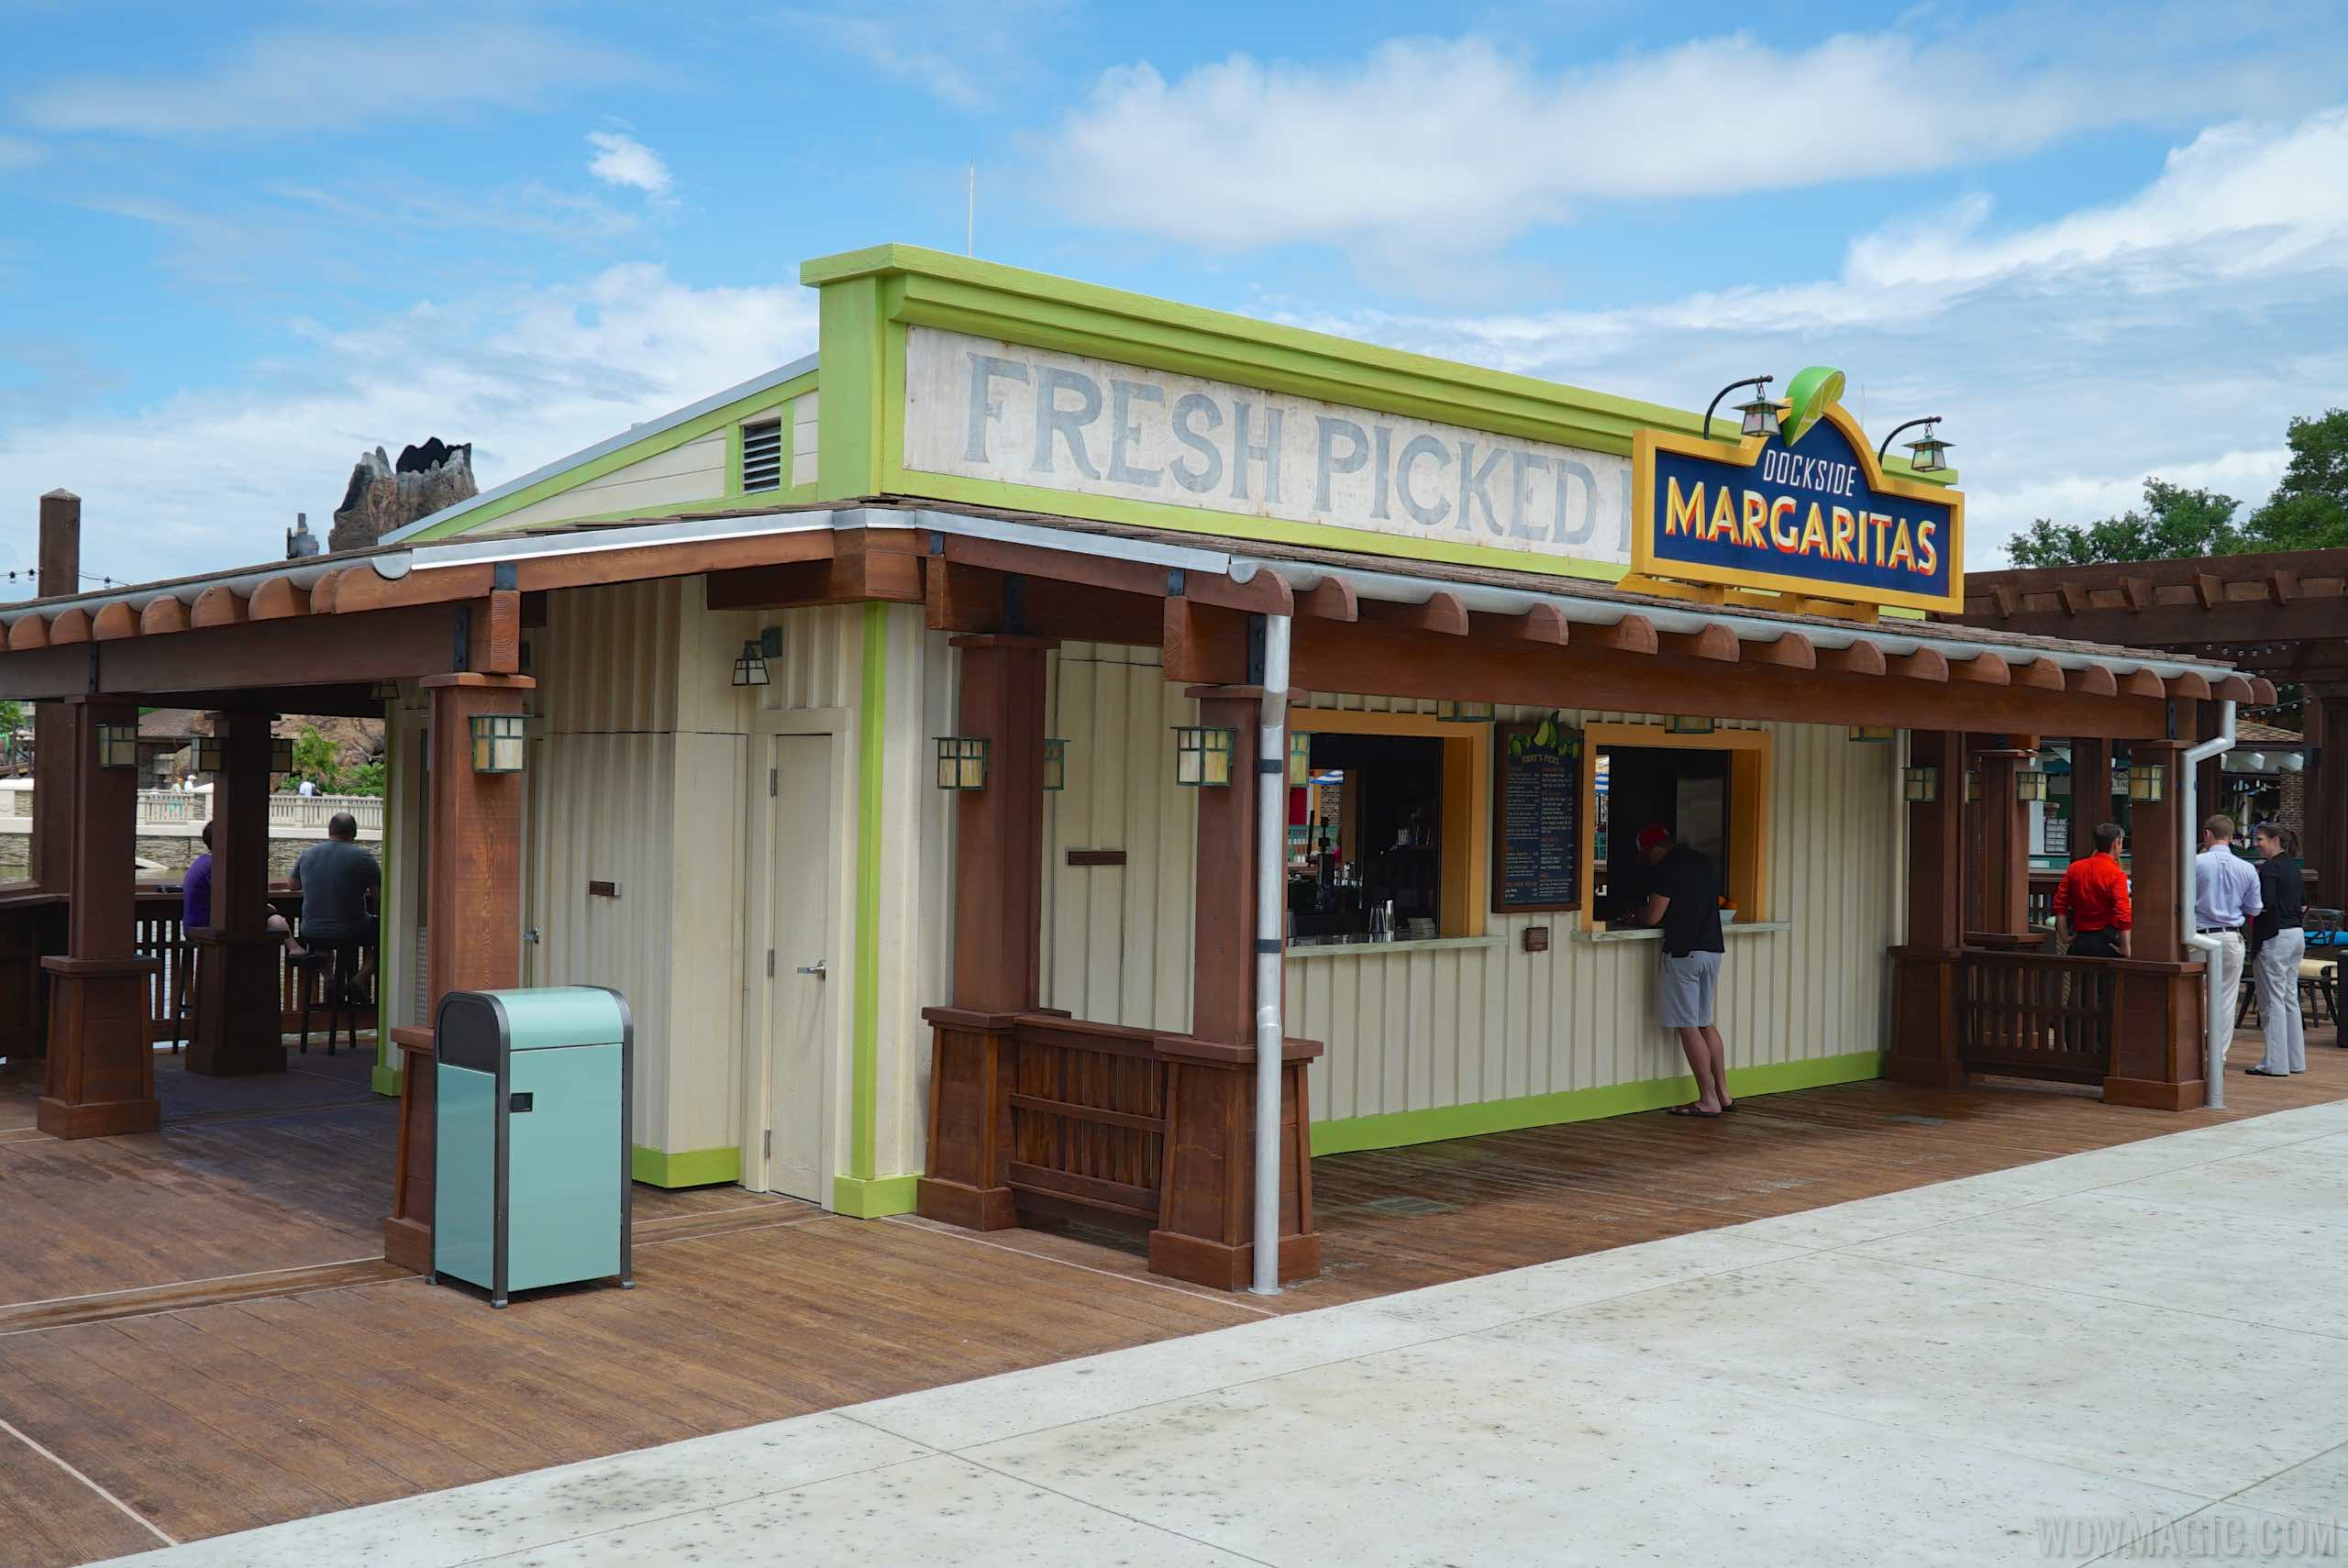 Dockside Margaritas - Overview